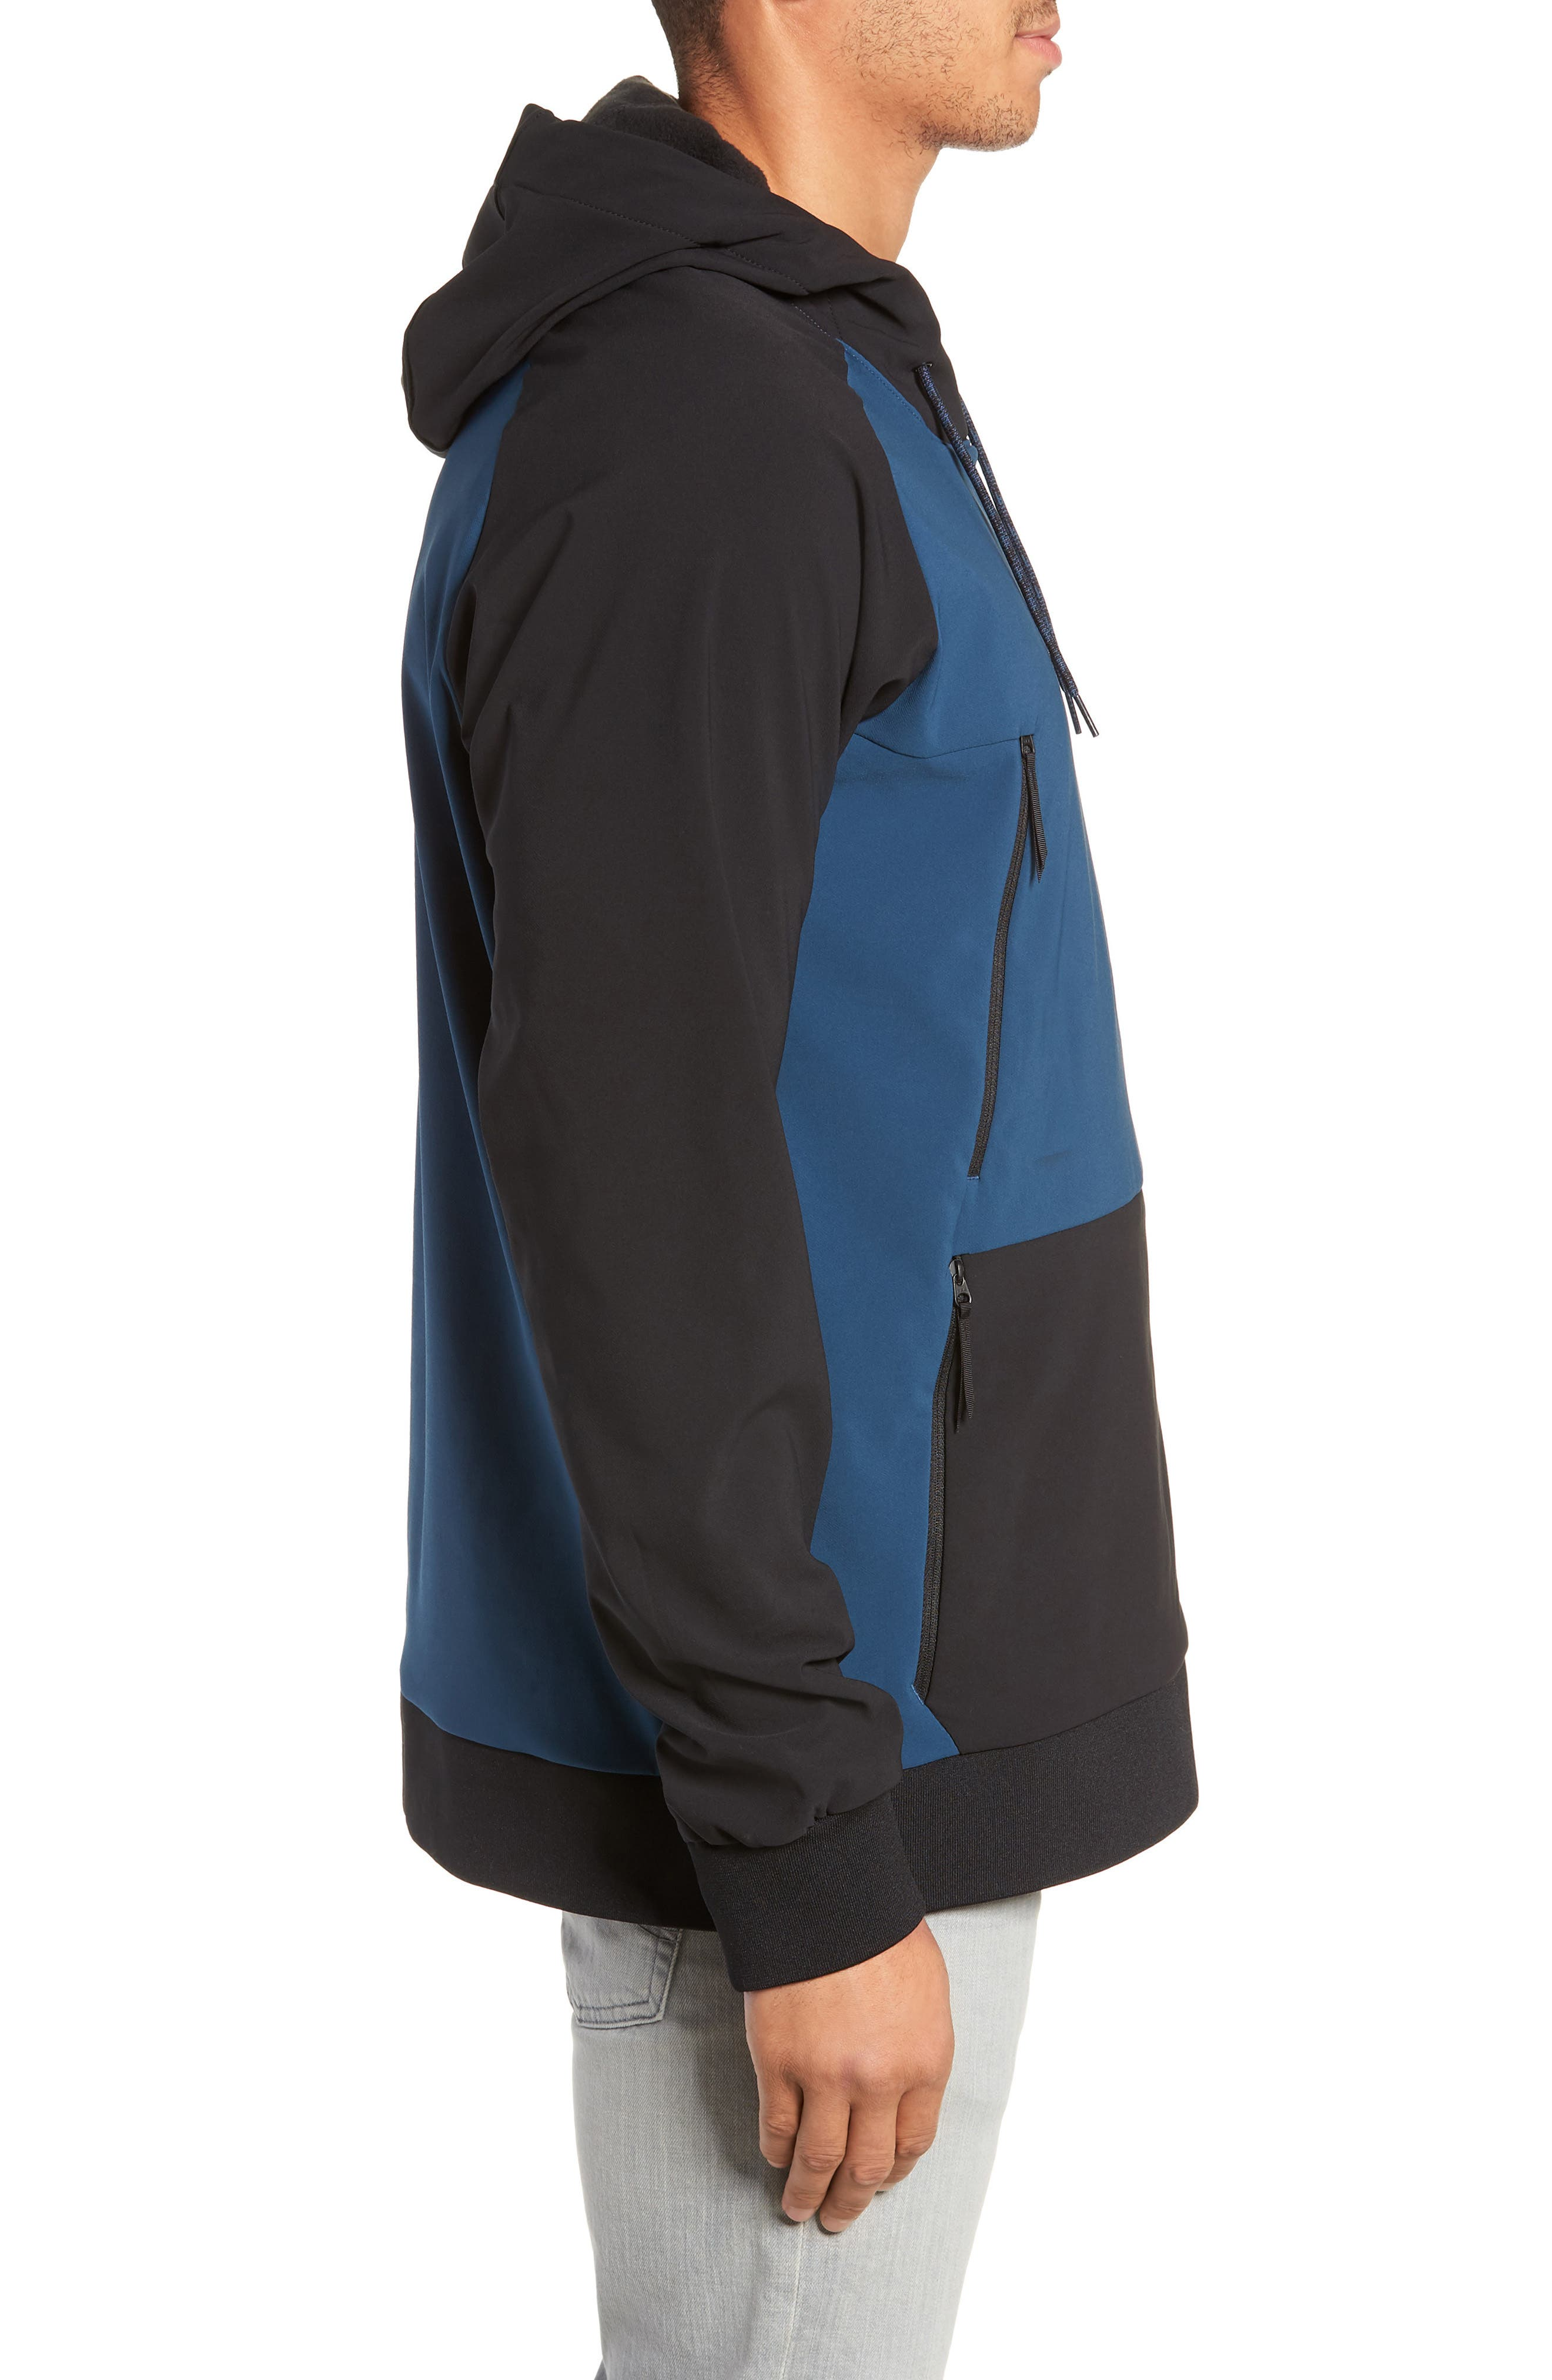 Tekno Pullover Hoodie,                             Alternate thumbnail 3, color,                             BLUE WING TEAL/ TNF BLACK